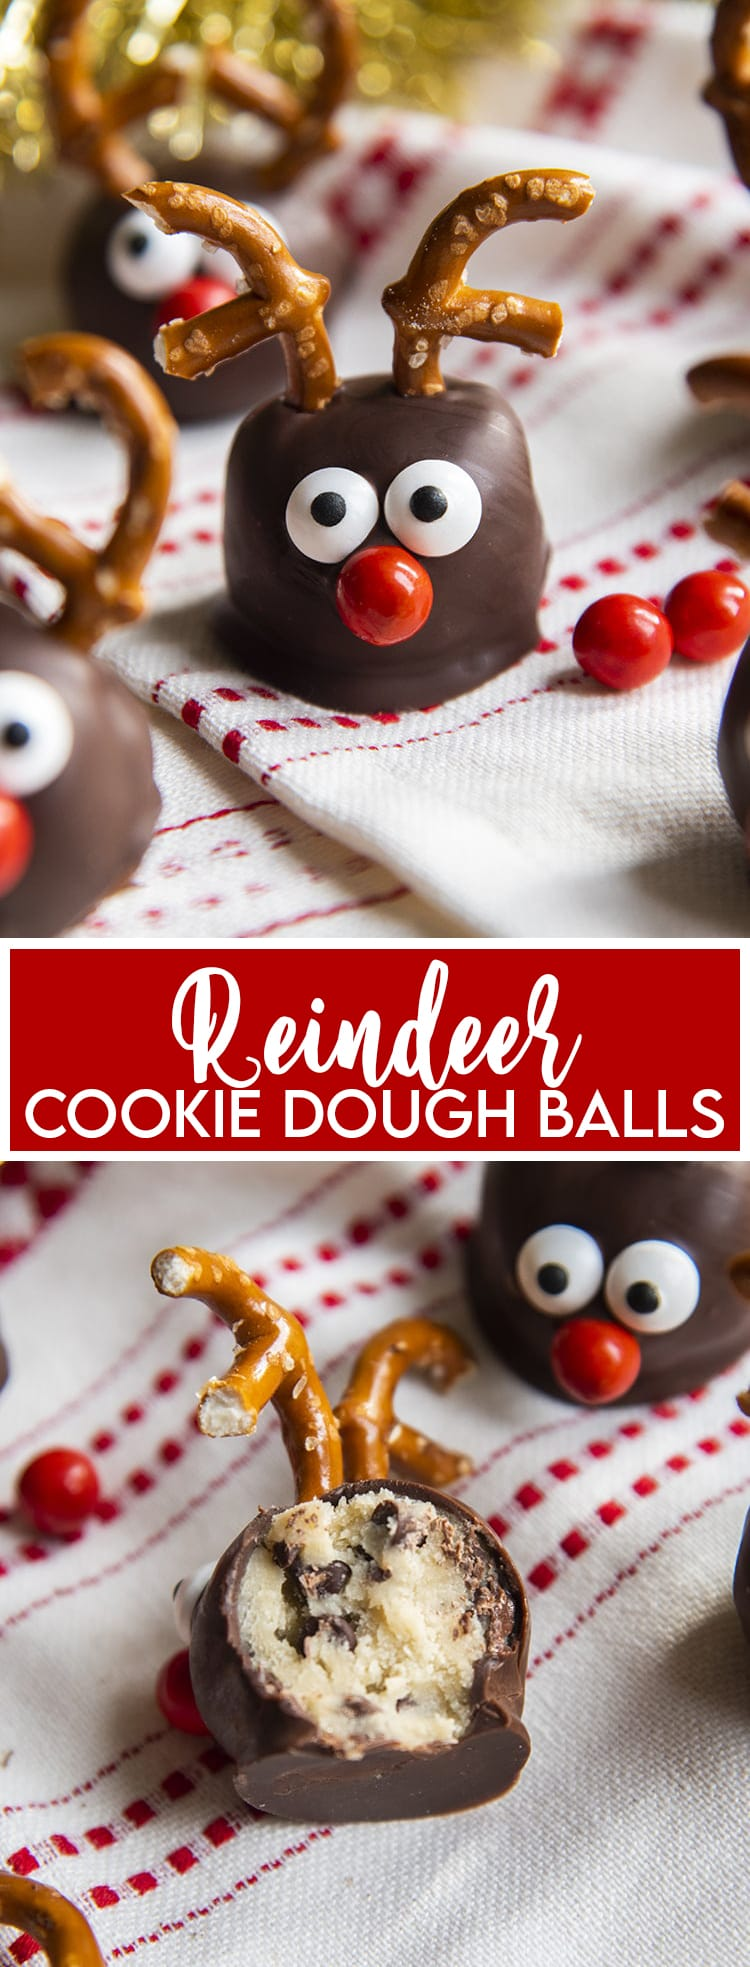 A cookie dough ball covered in chocolate, and decorated with pretzels, candy eyes and a red nose to look like a reindeer. On a white and red cloth with a text overlay for pinterest. Then a photo of one of the balls bit in half showing the cookie dough in the middle.